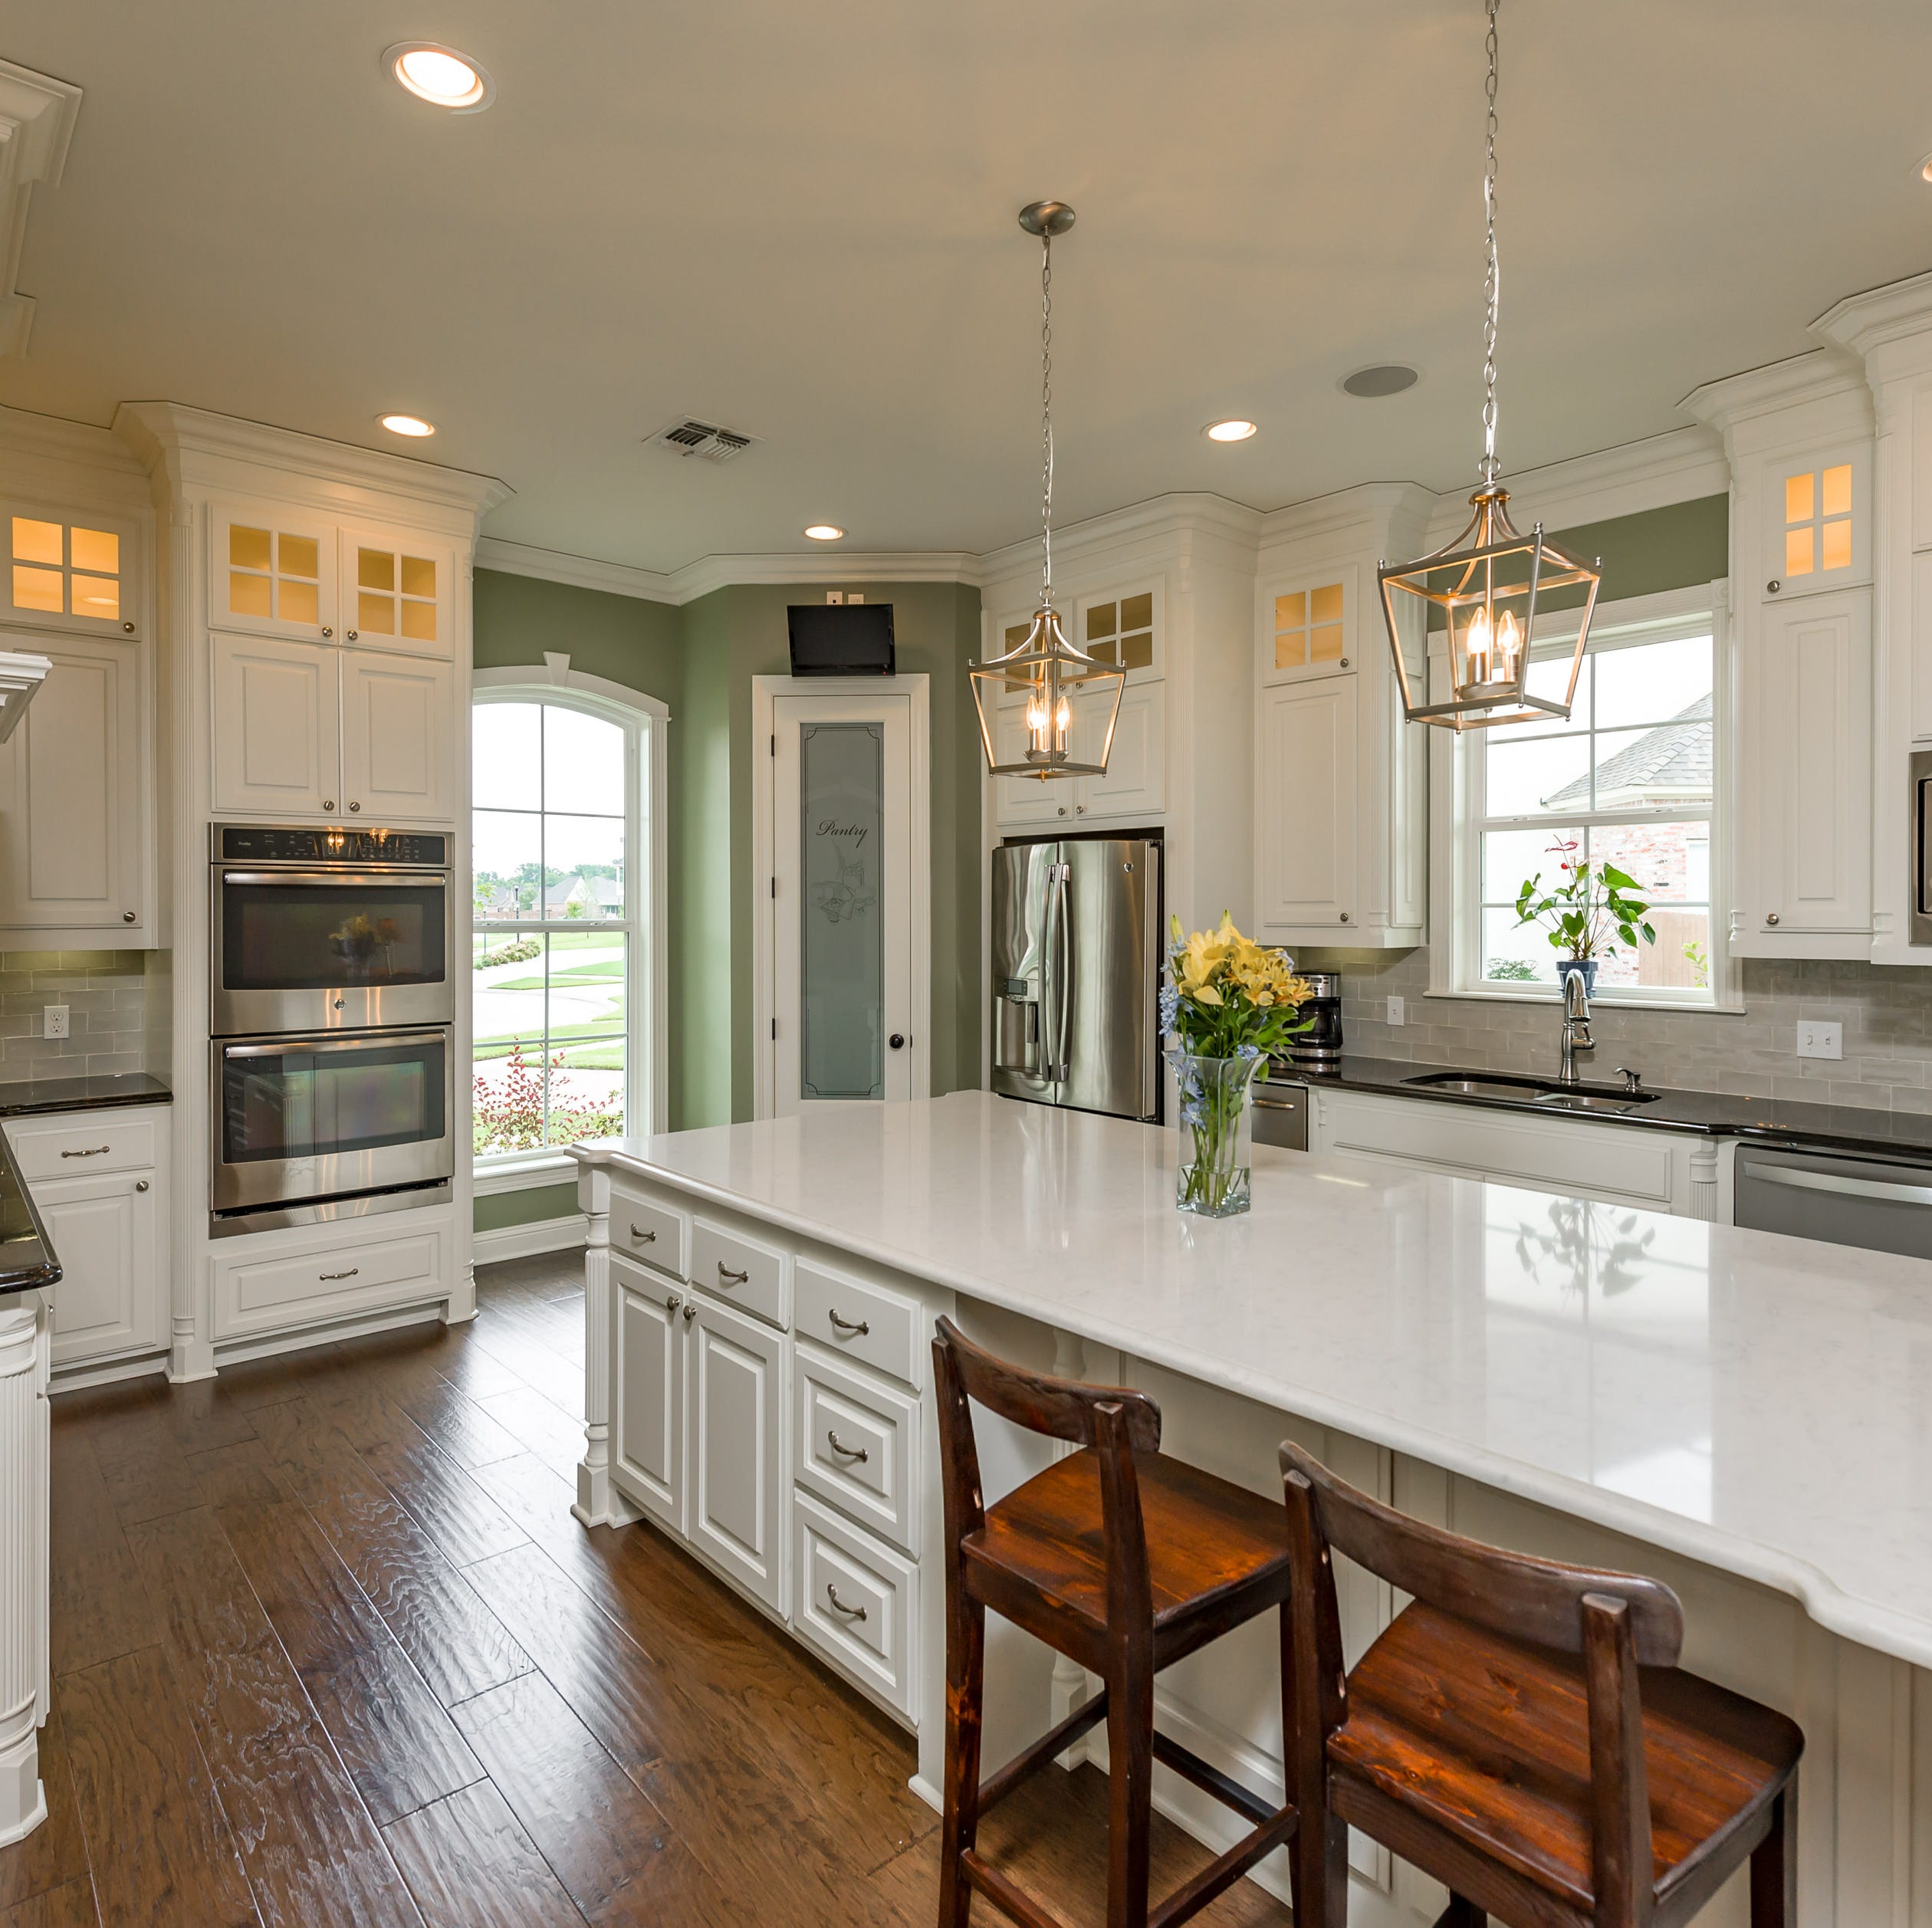 On the market: Homes with trendy designs